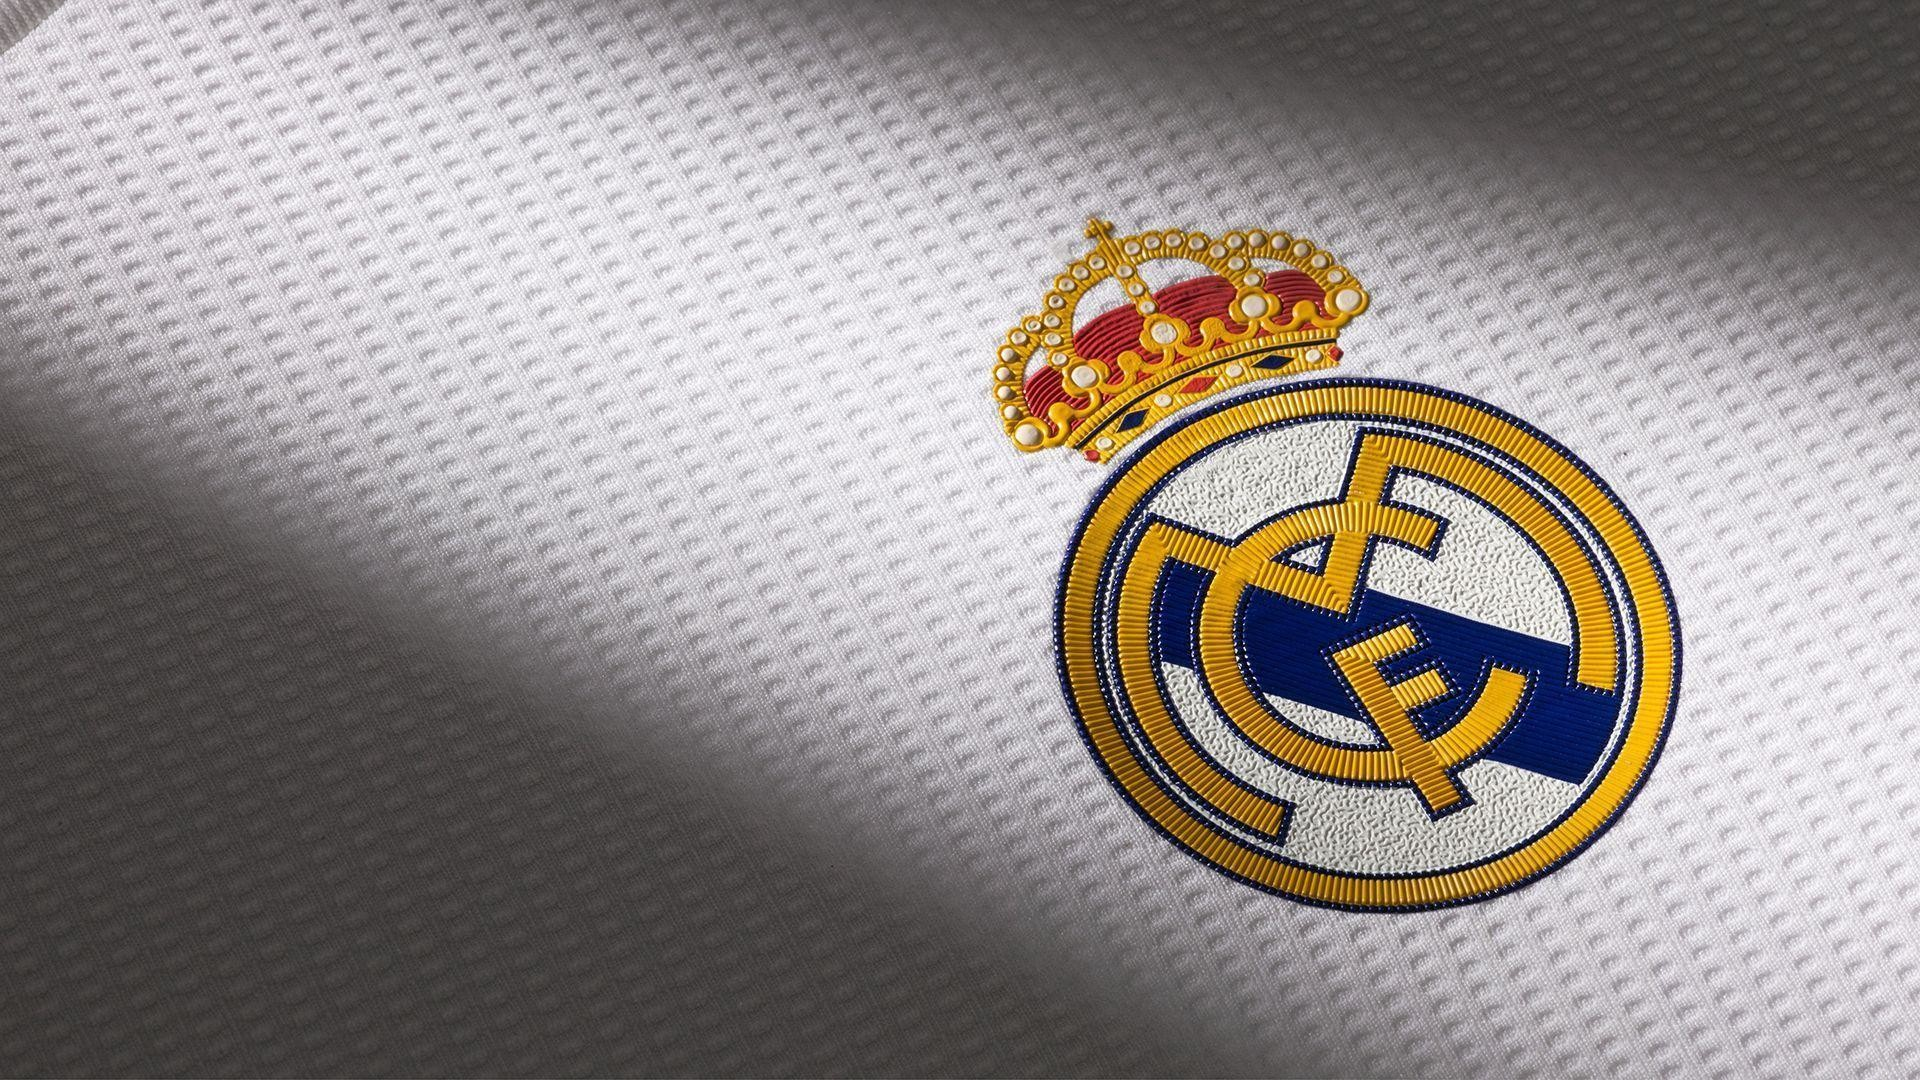 Res: 1920x1080, Real Madrid Logo Wallpaper HD 2016 | HD Wallpapers, Backgrounds .